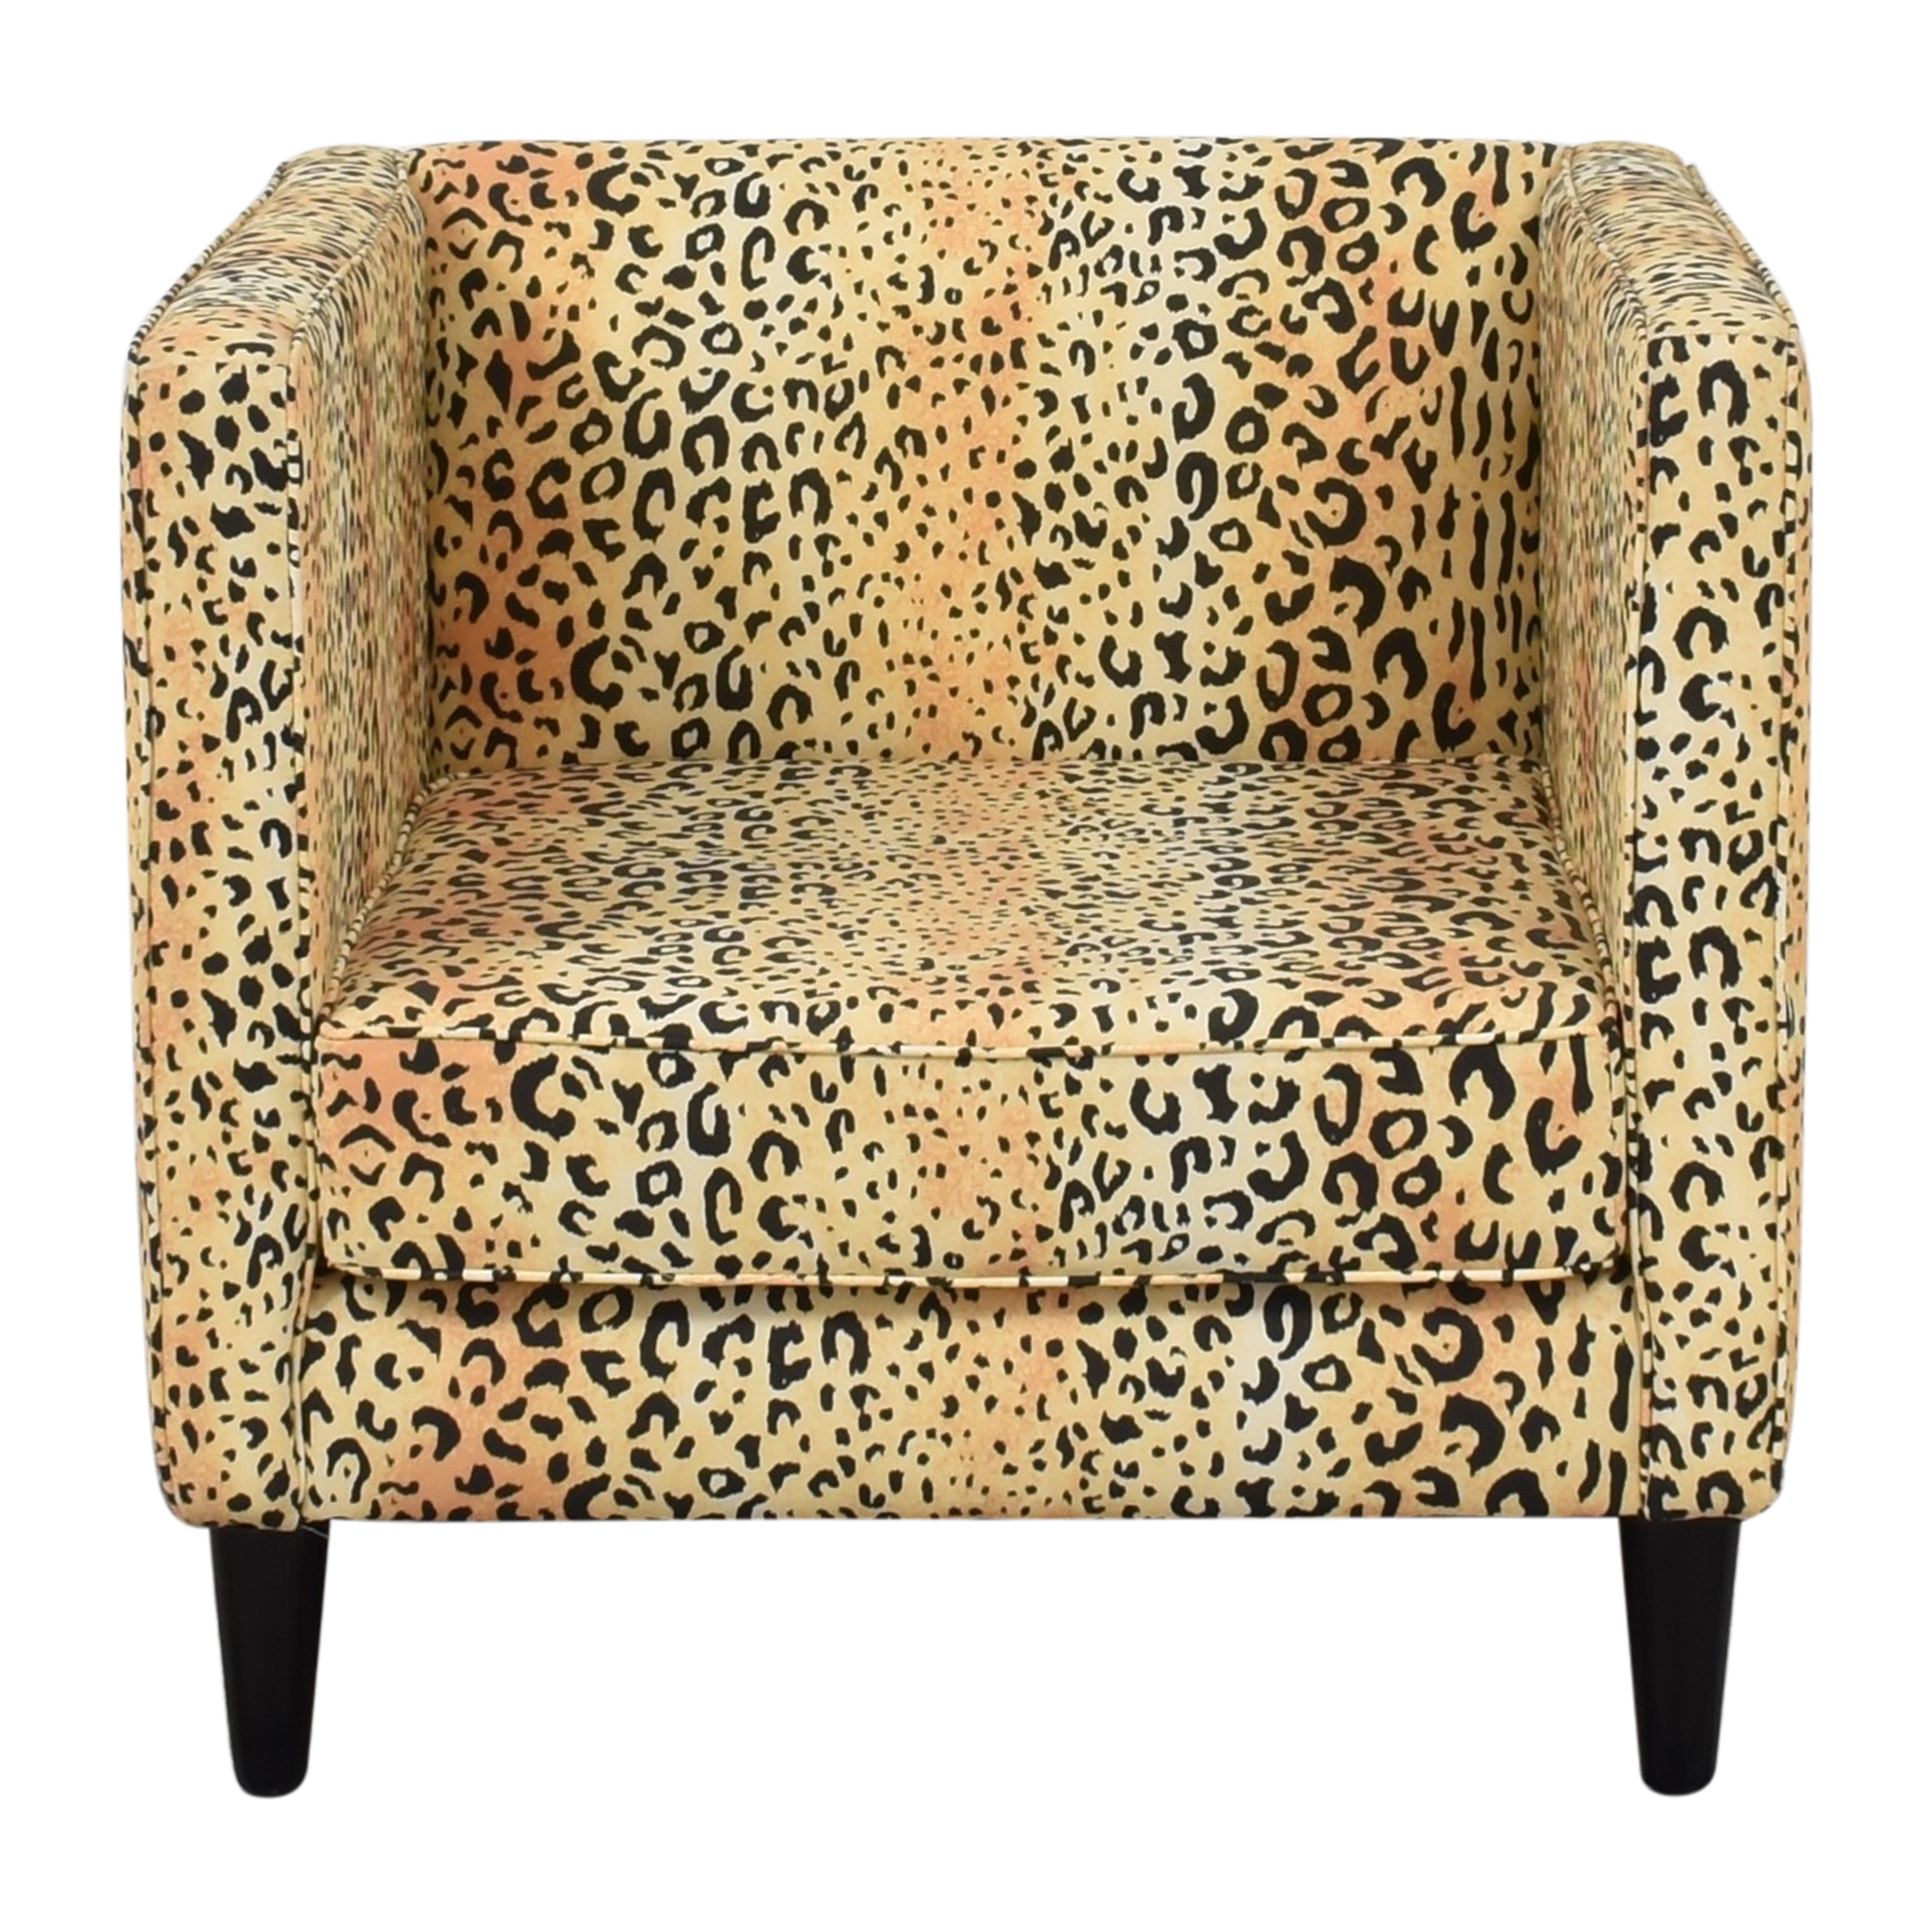 The Inside The Inside Leopard Tuxedo Chair discount